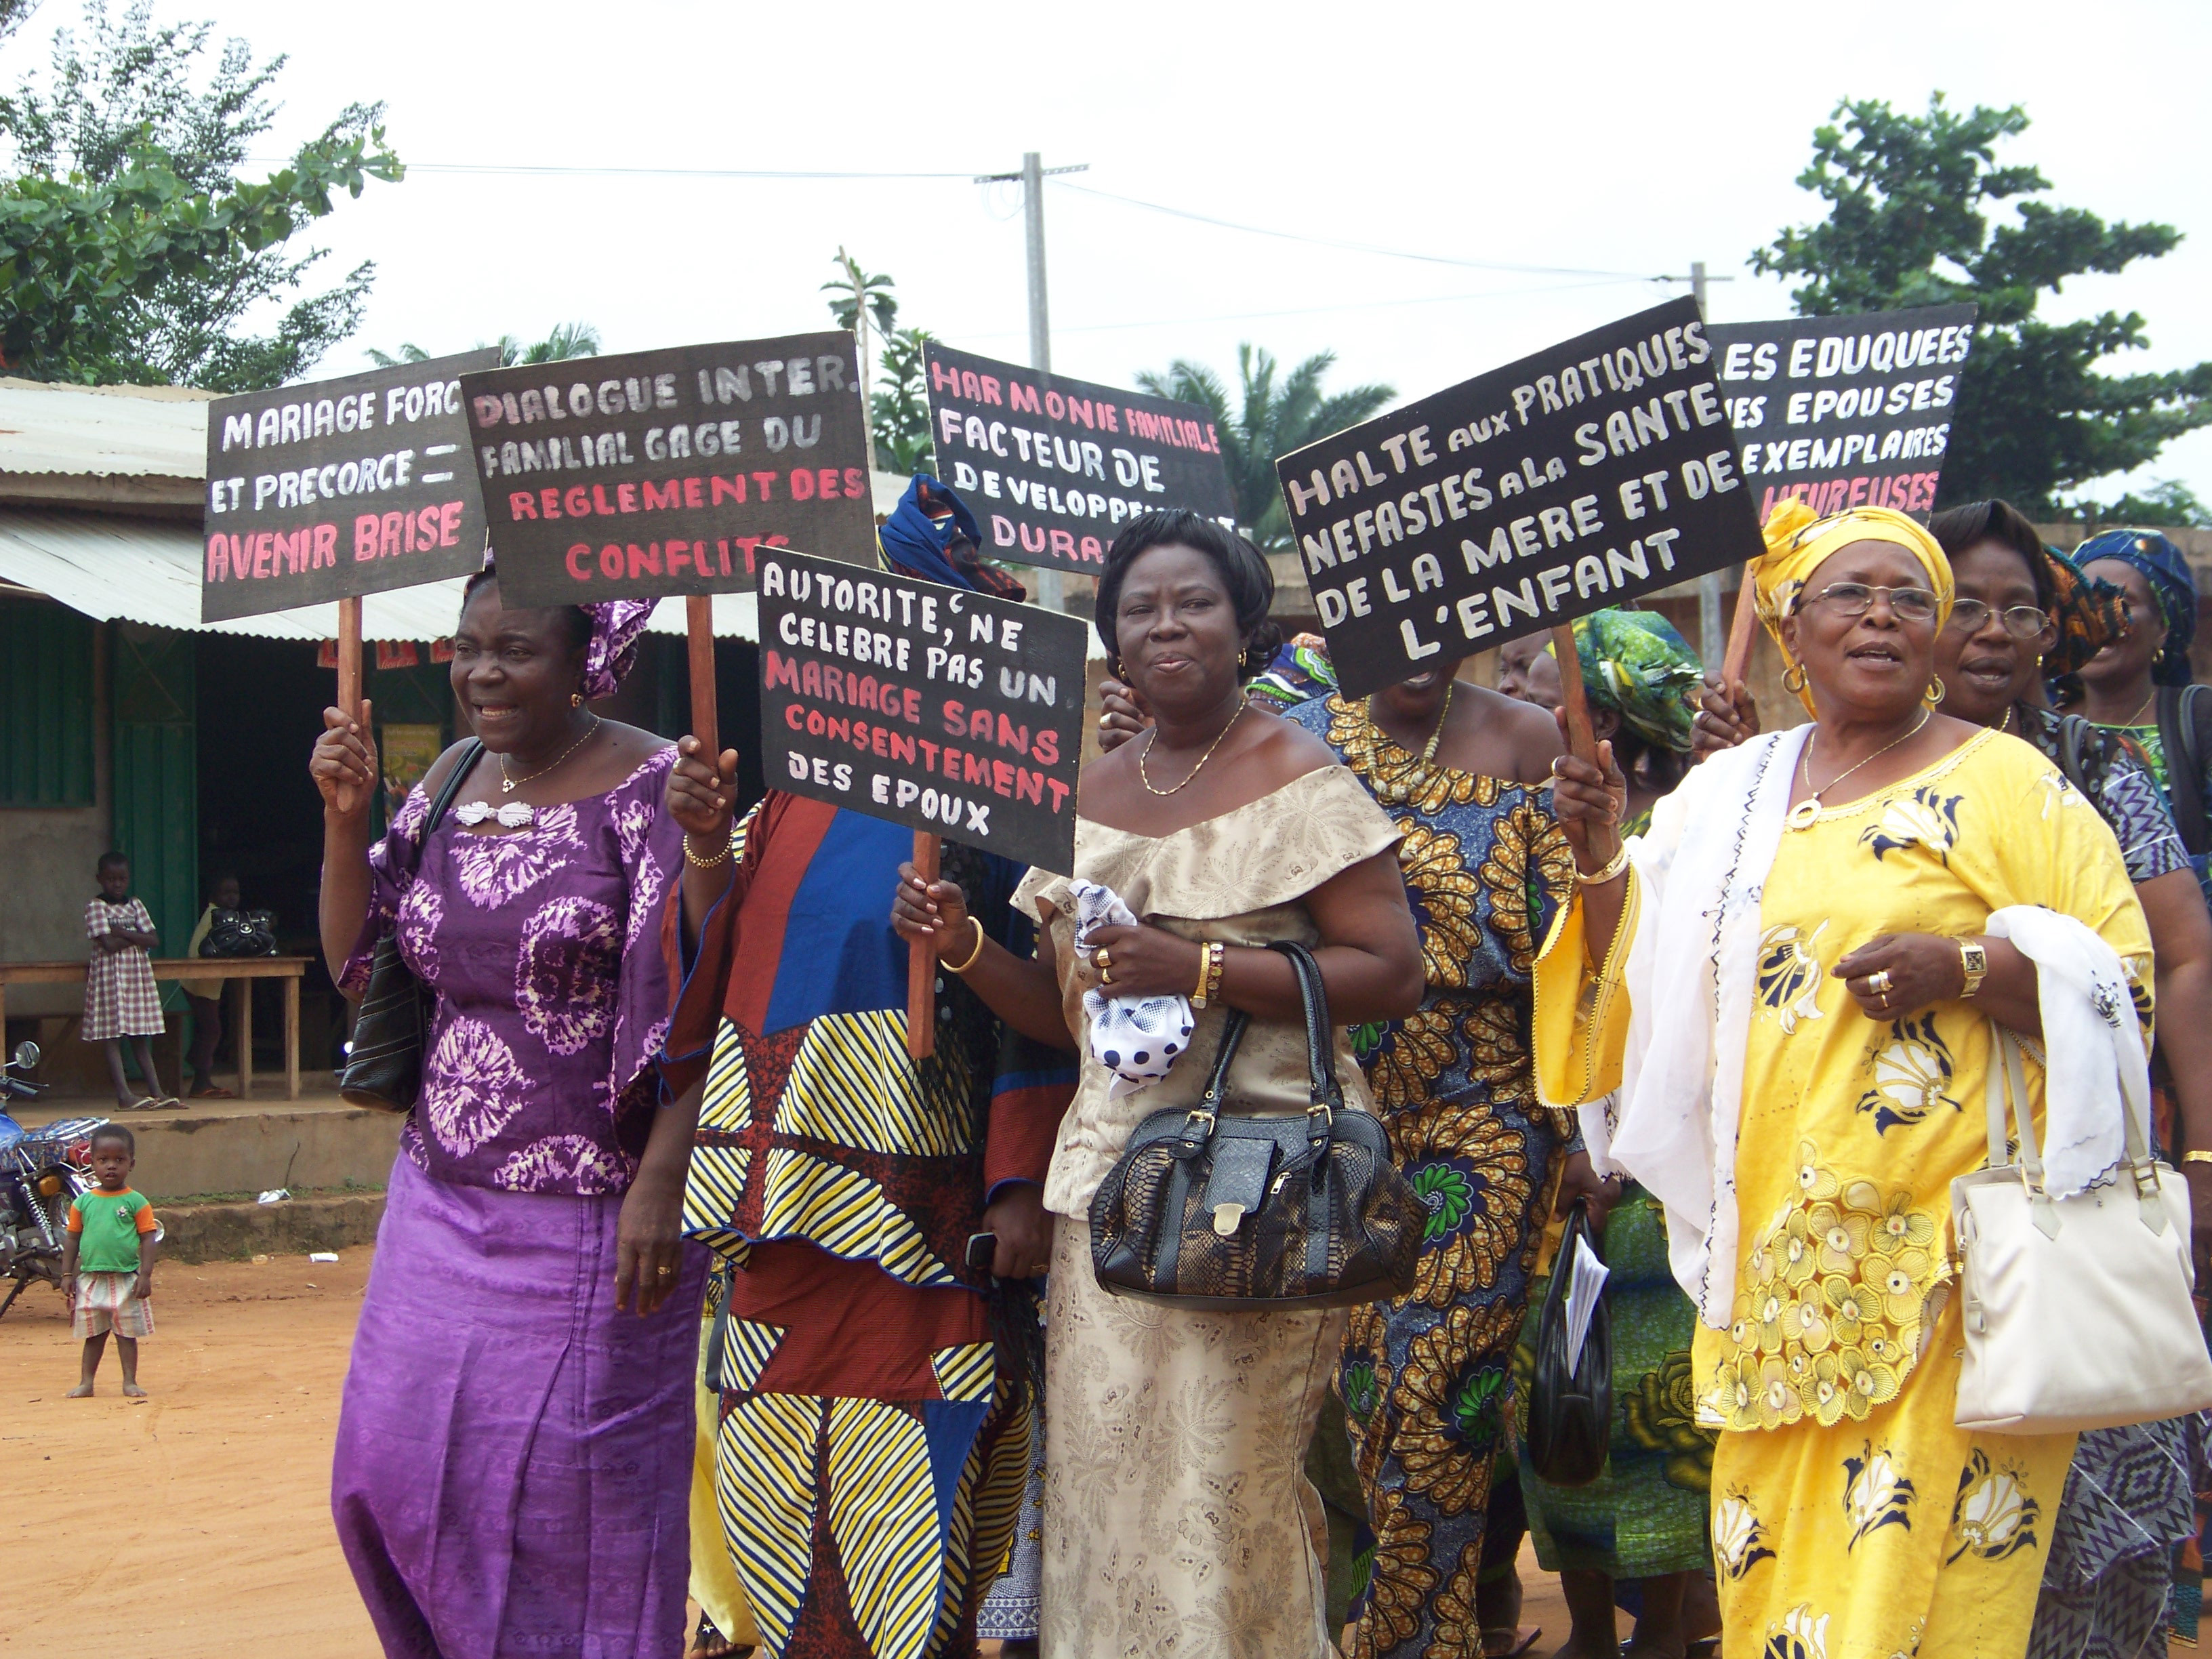 Women march to end gender-based violence in Ouémé, Benin